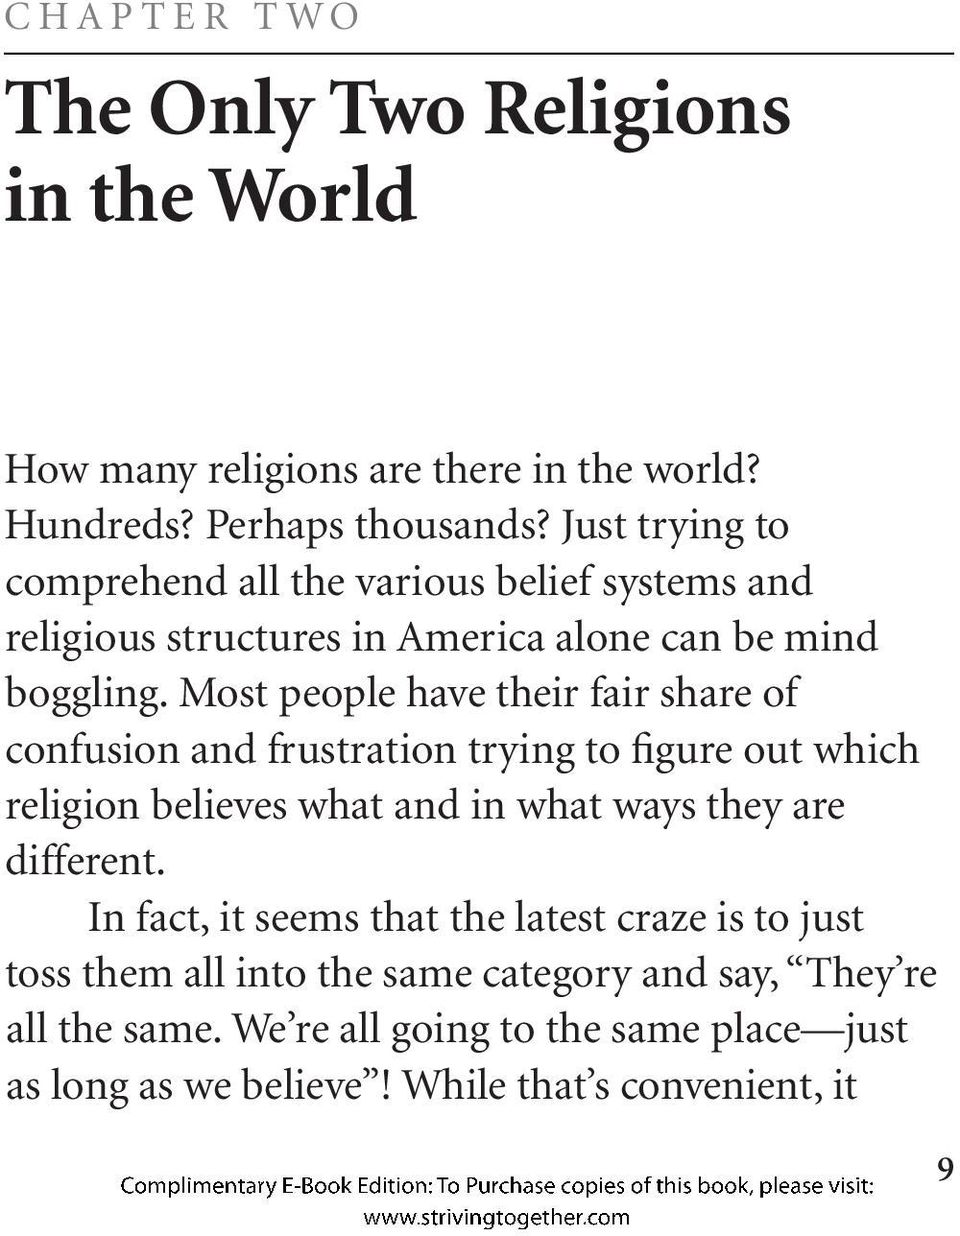 Most people have their fair share of confusion and frustration trying to figure out which religion believes what and in what ways they are different.